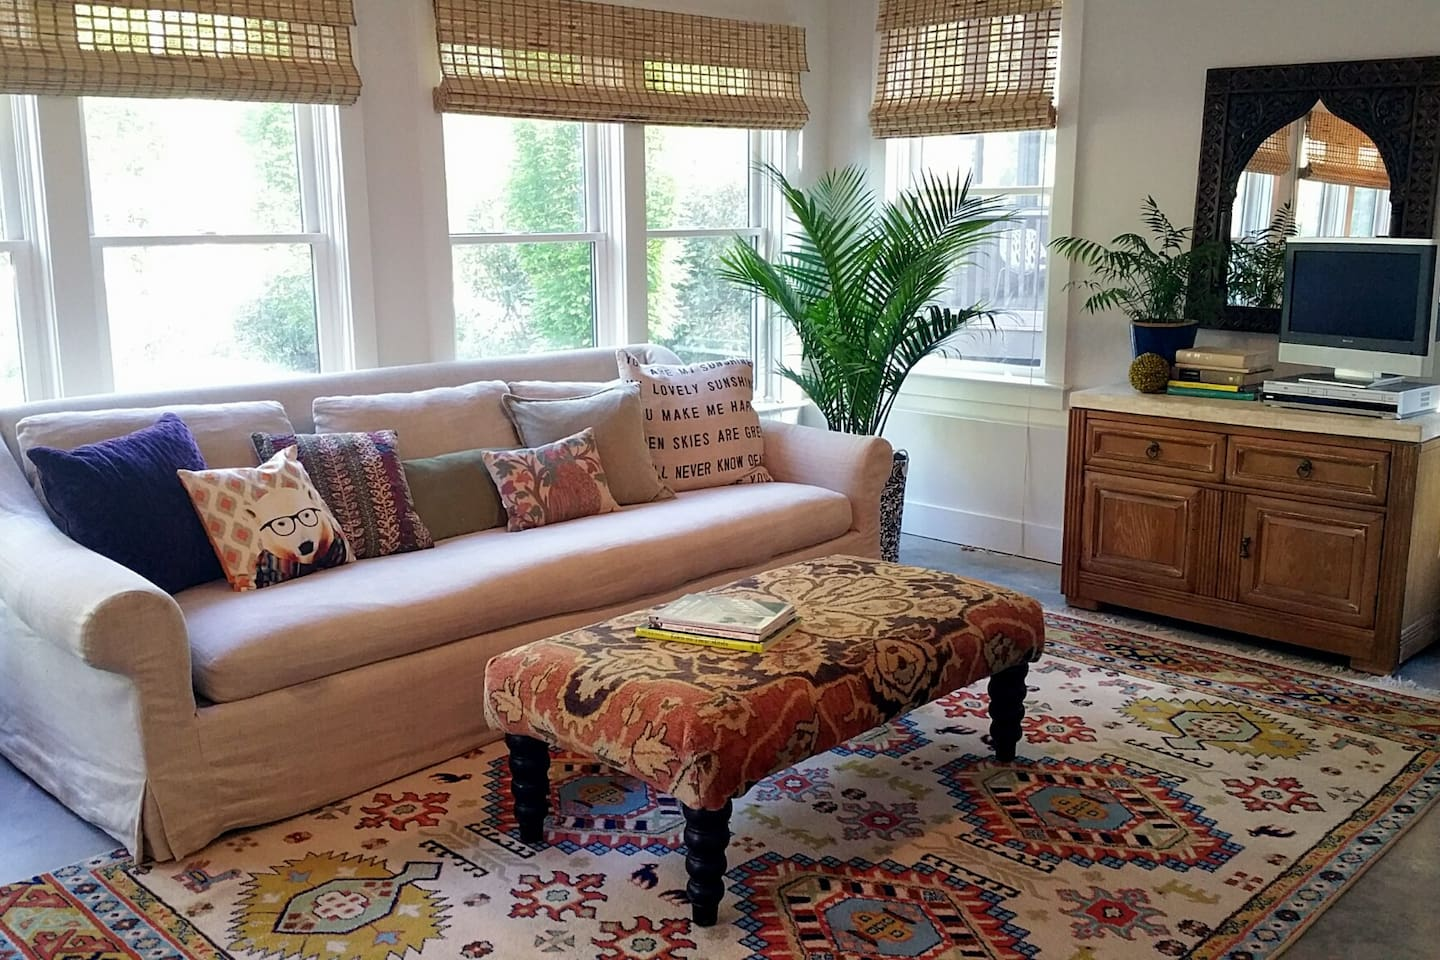 Restoration Hardware sofa has one long firm cushion that can be made up for 1-2 children...